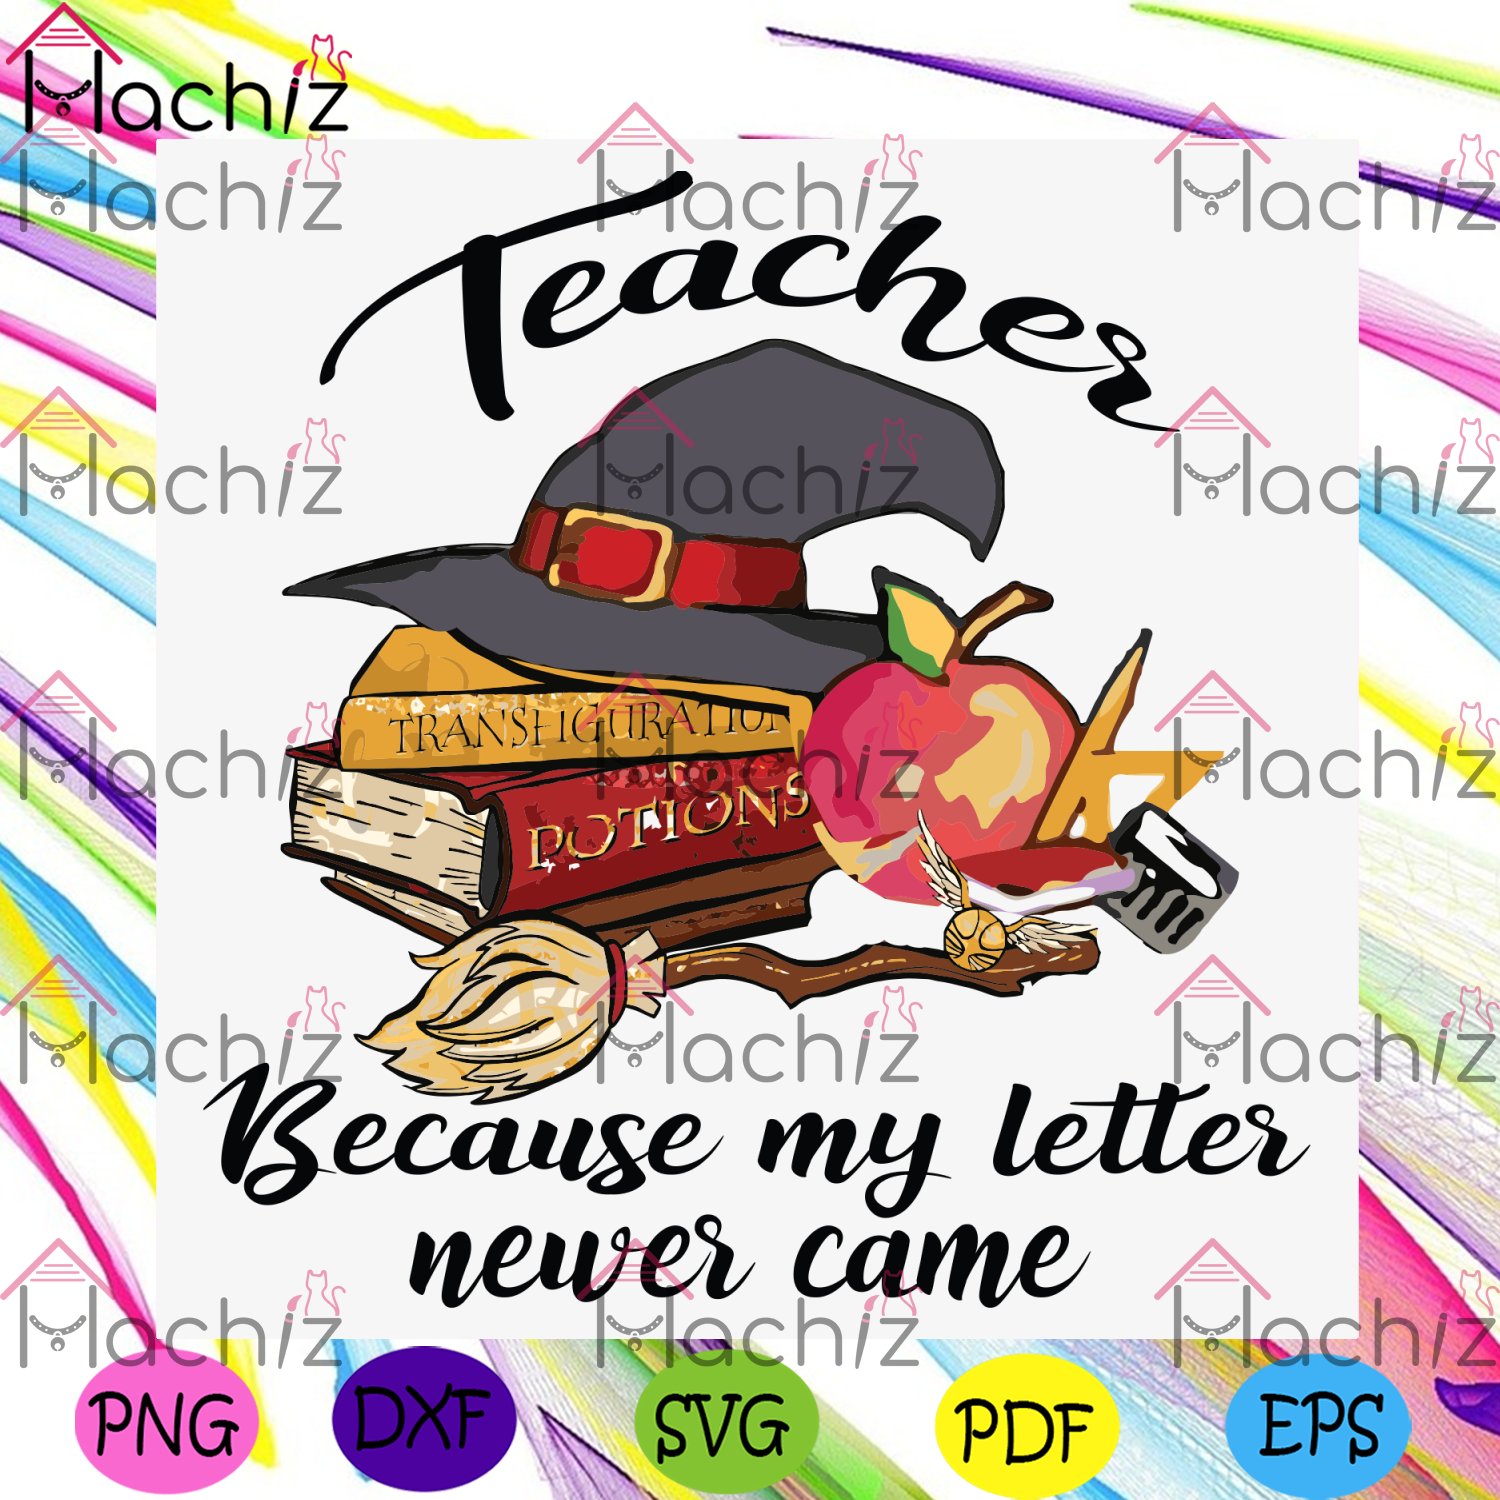 Teacher Because My Letter Never Came Svg, Halloween Svg, Teacher Svg, Witch Svg, Witch Hat Svg, Books Svg, Apple Svg, Letter Svg, Reading Svg, Funny Quote, Funny Halloween, Halloween Party